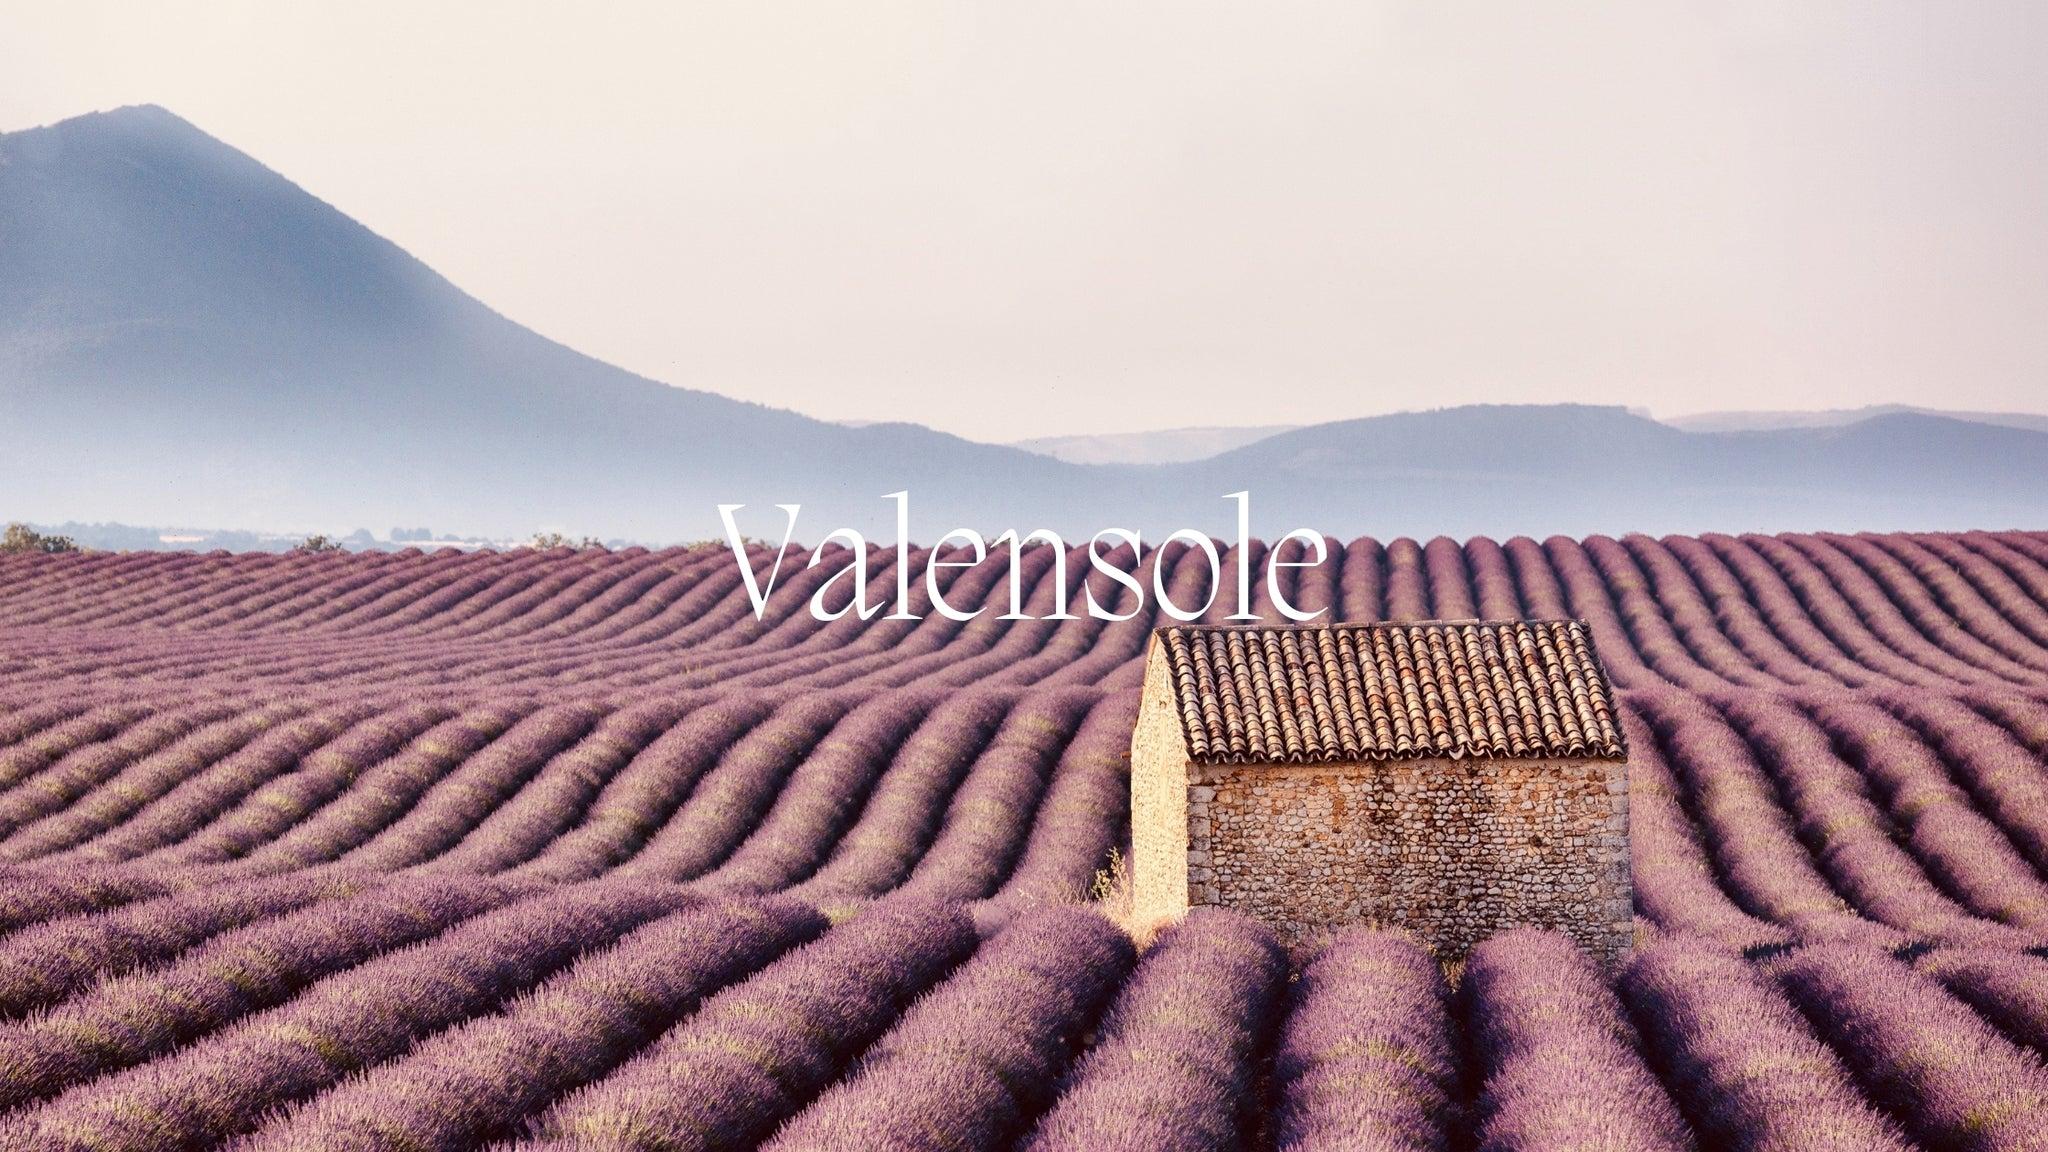 Image of the lavender fields of Valensol